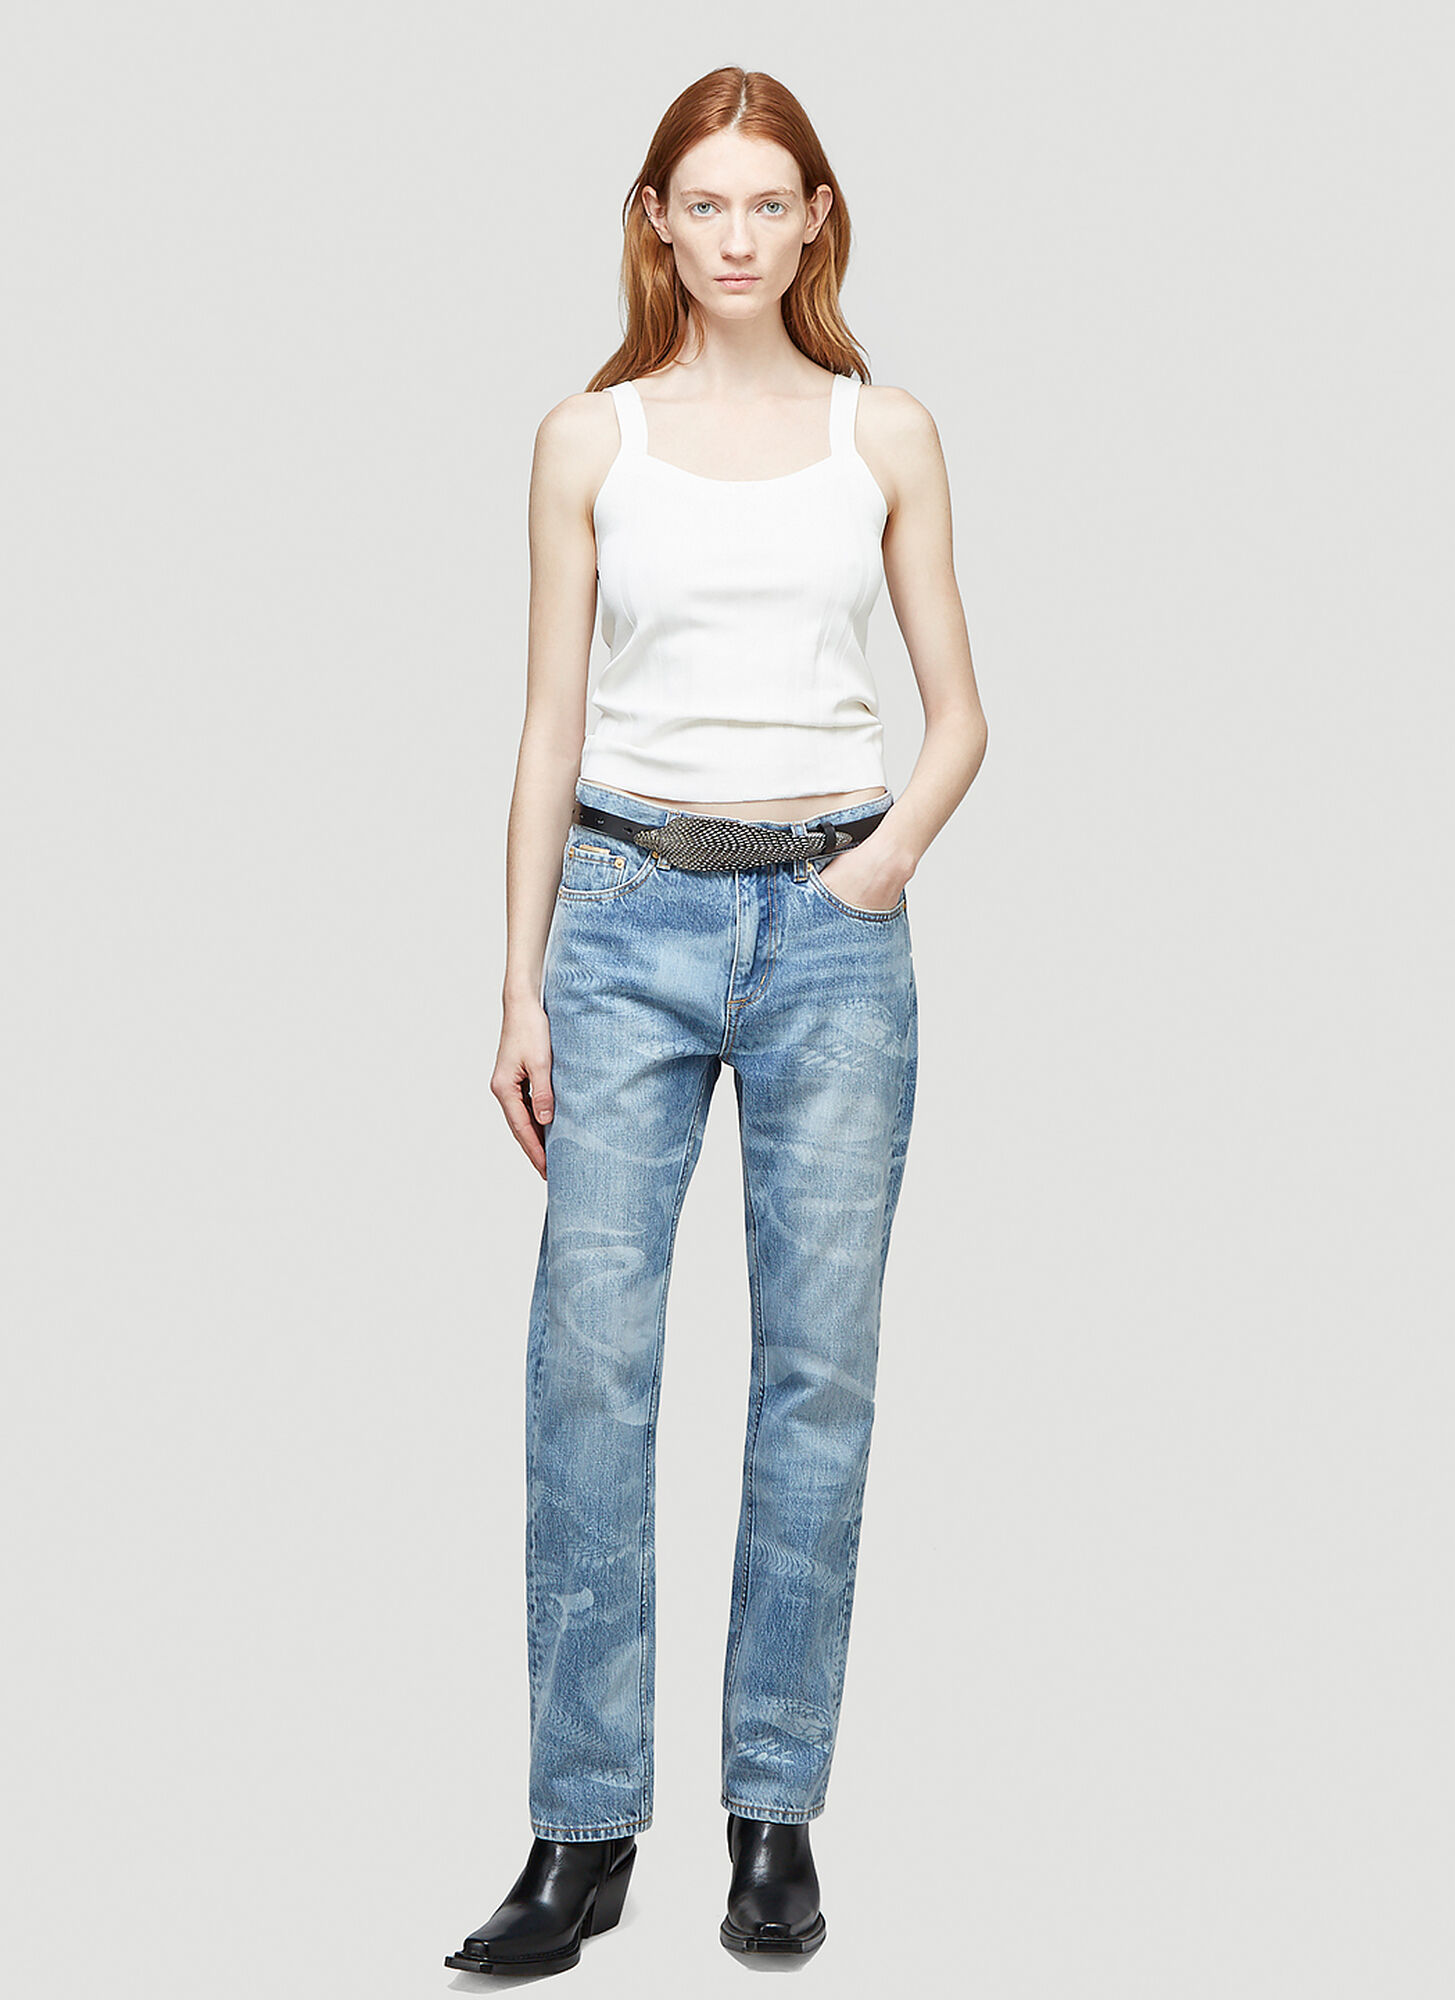 Eytys Cypress Laser Jeans in Blue | LN-CC female Blue 100% Cotton. Dry clean.